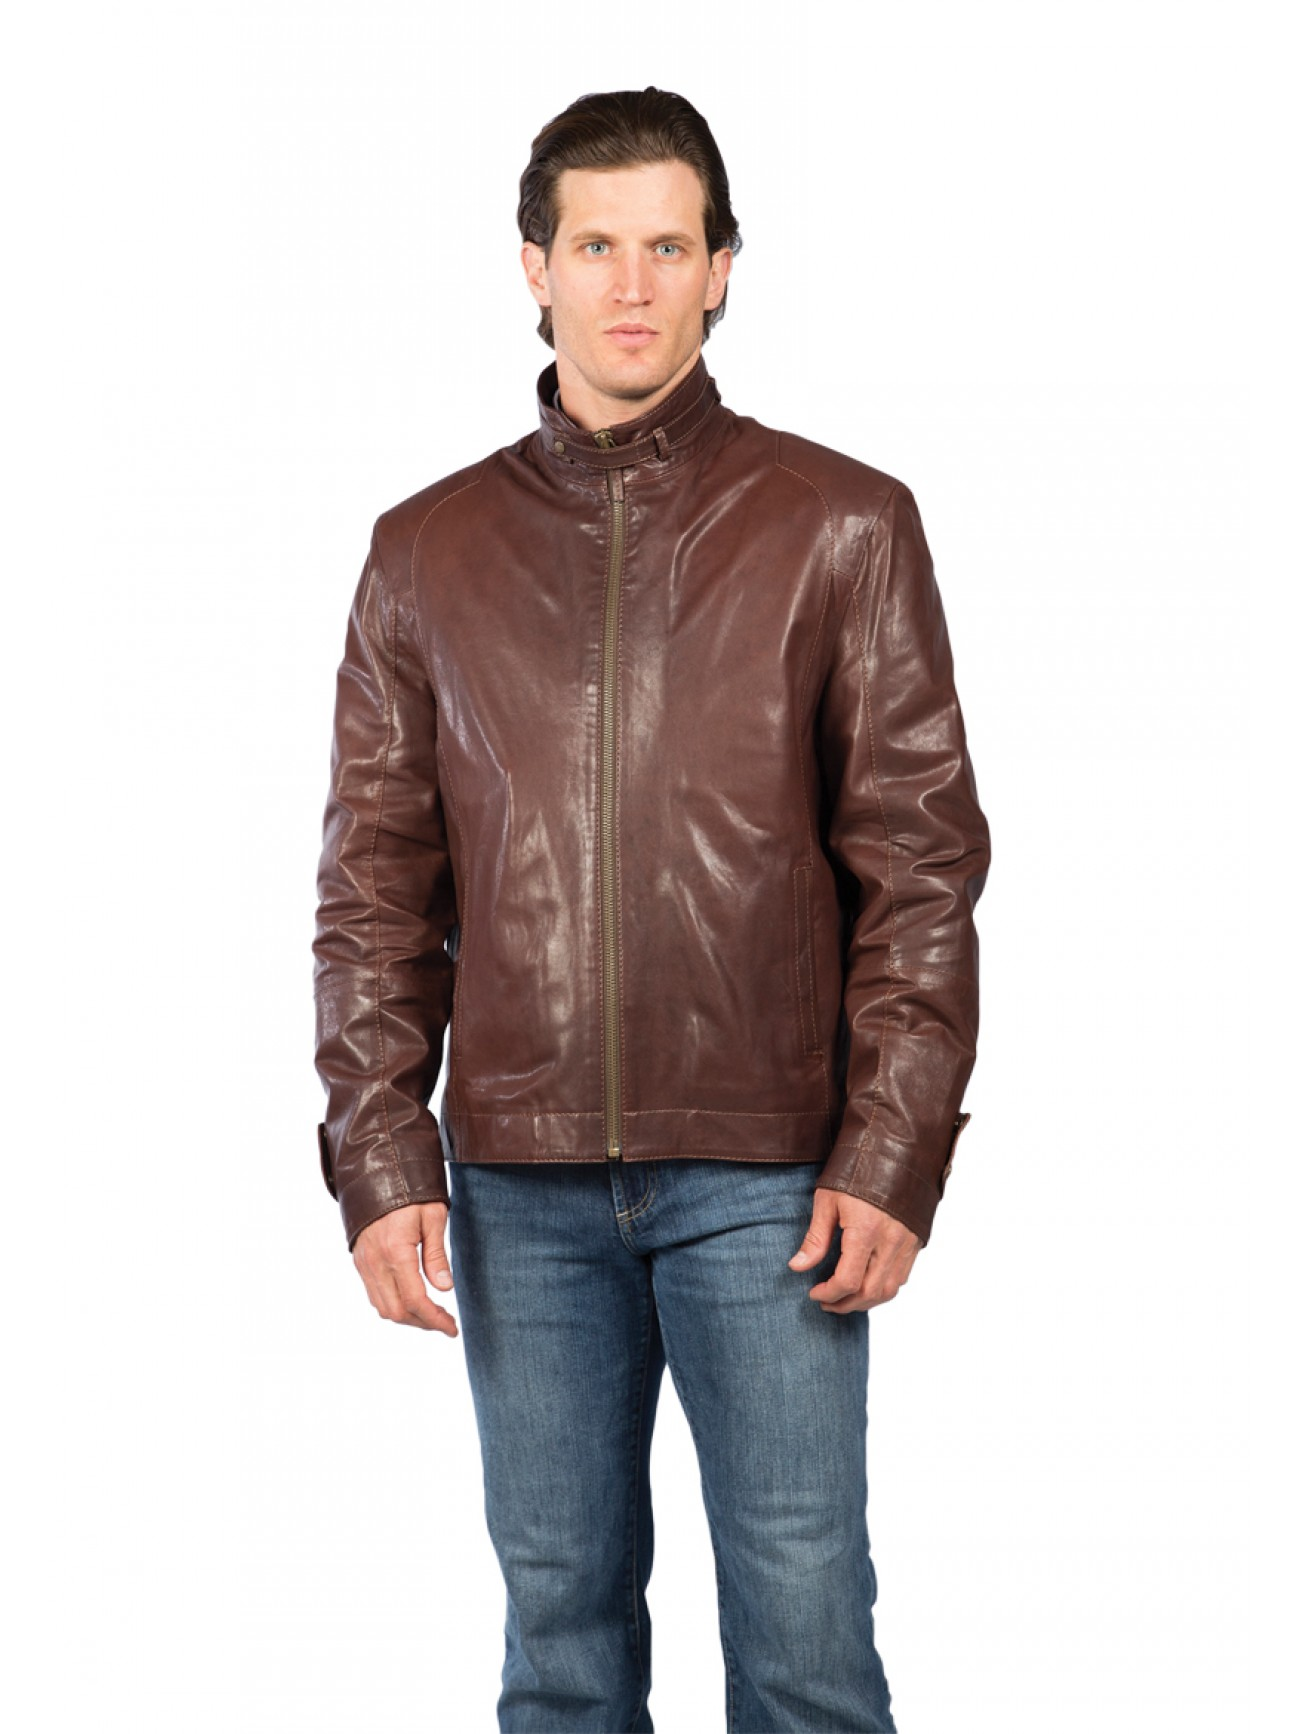 Men S Casual Inspiration 4: Men's Lambskin Leather Jacket